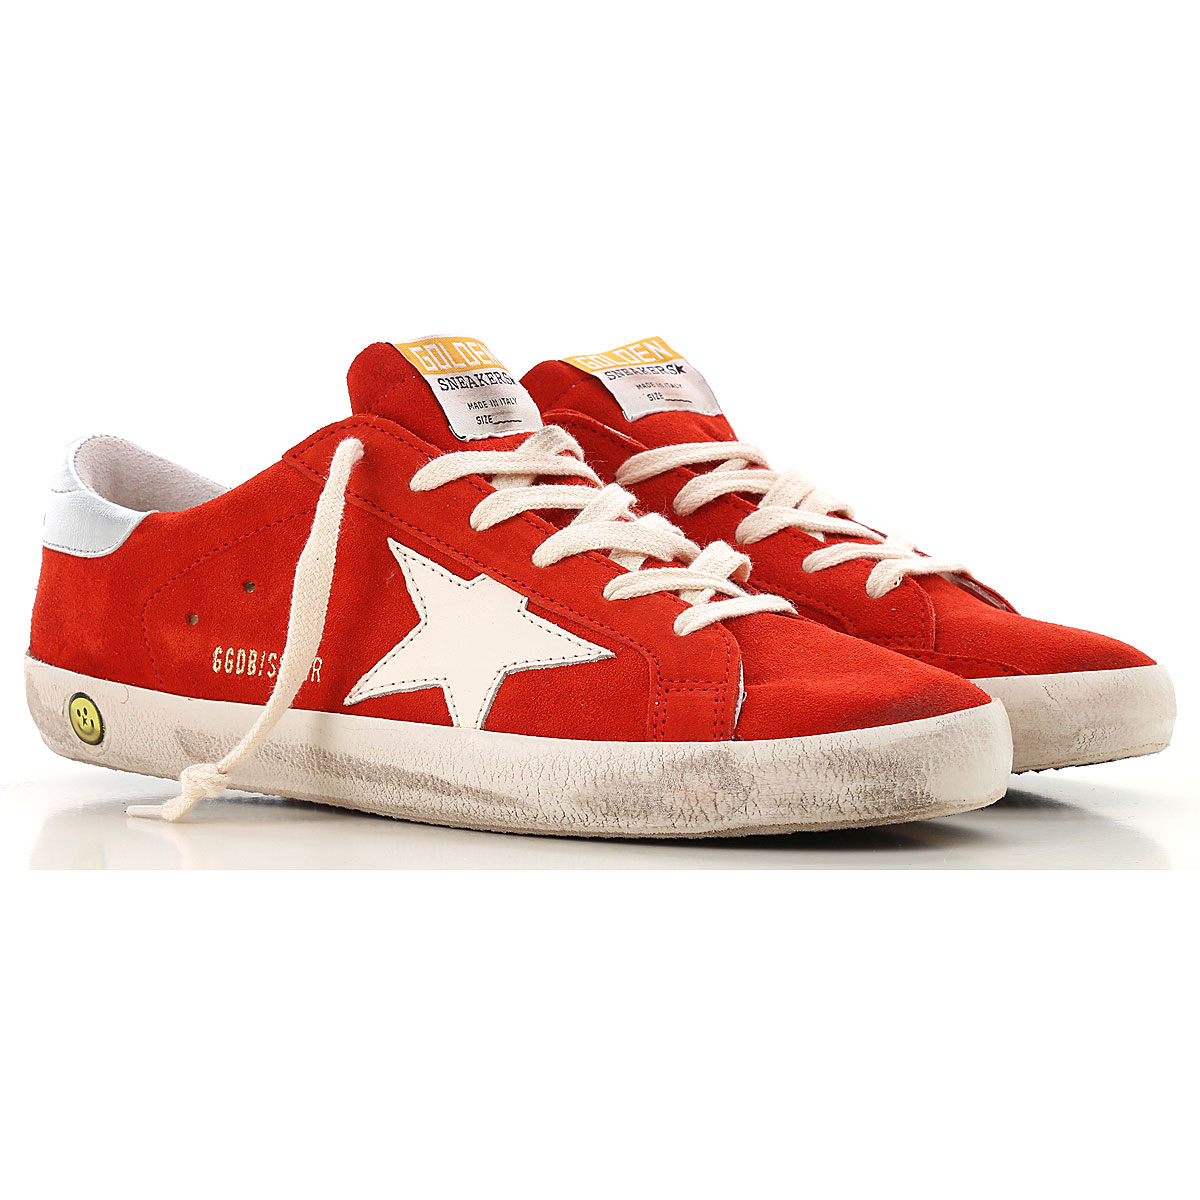 Image of Golden Goose Sneakers, Red, Suede leather, 2017, 36 37 38